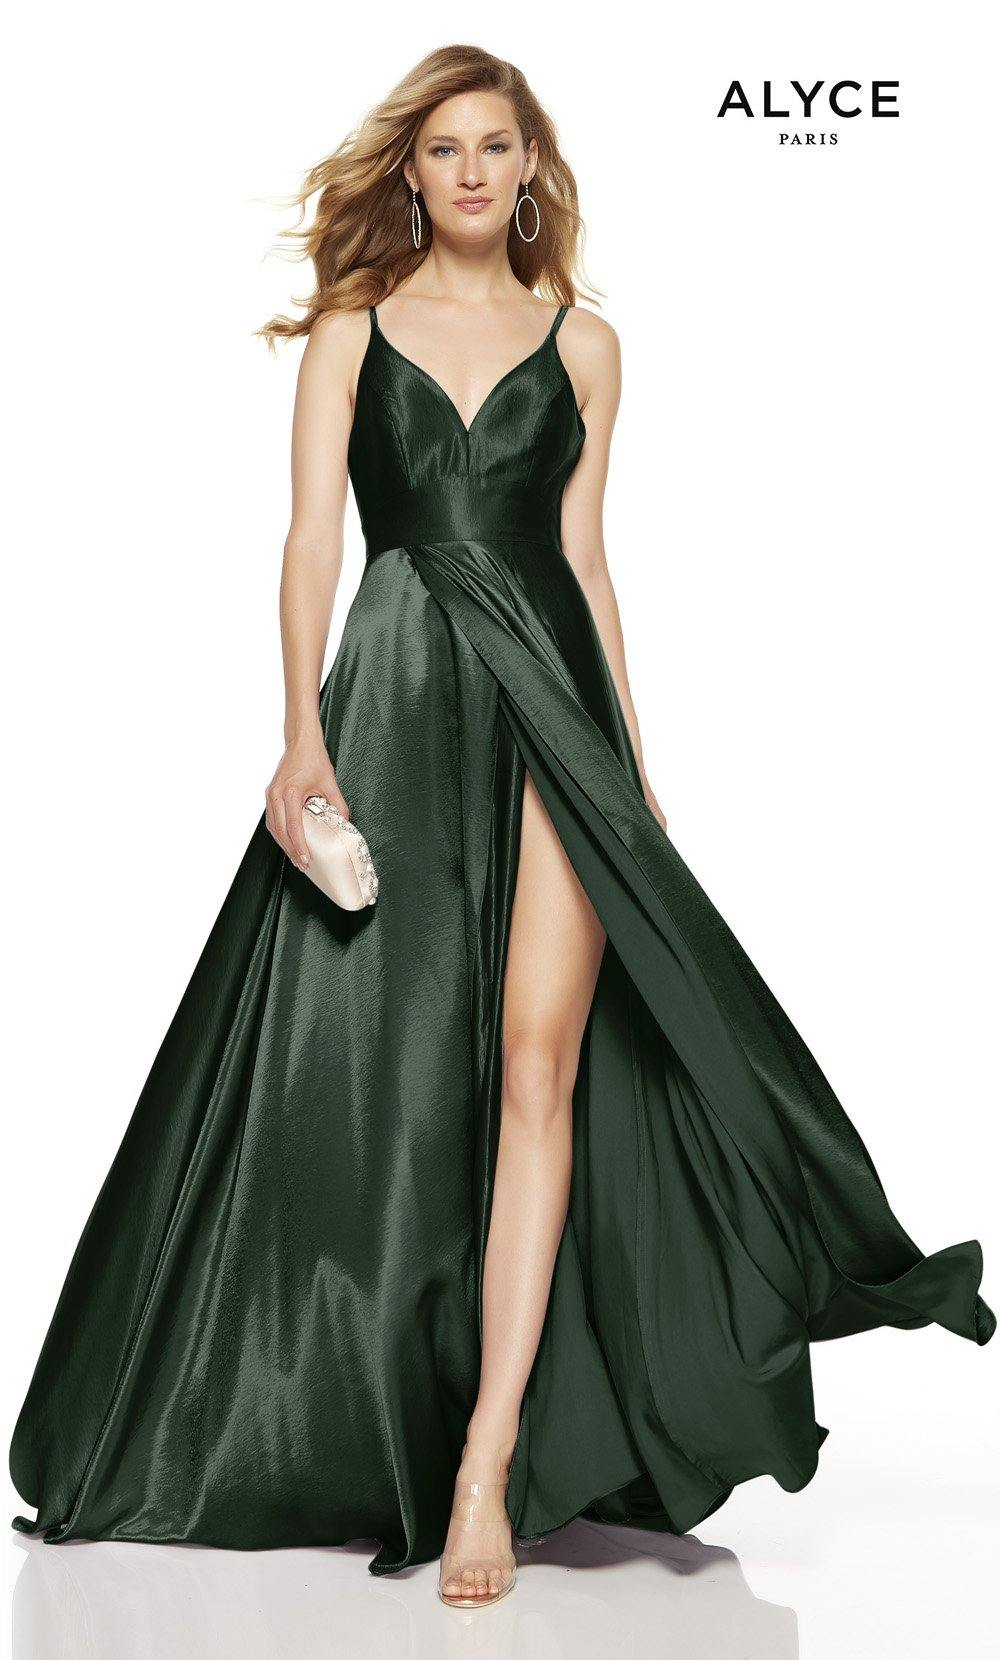 Pine formal dress with a V-neck and a high slit